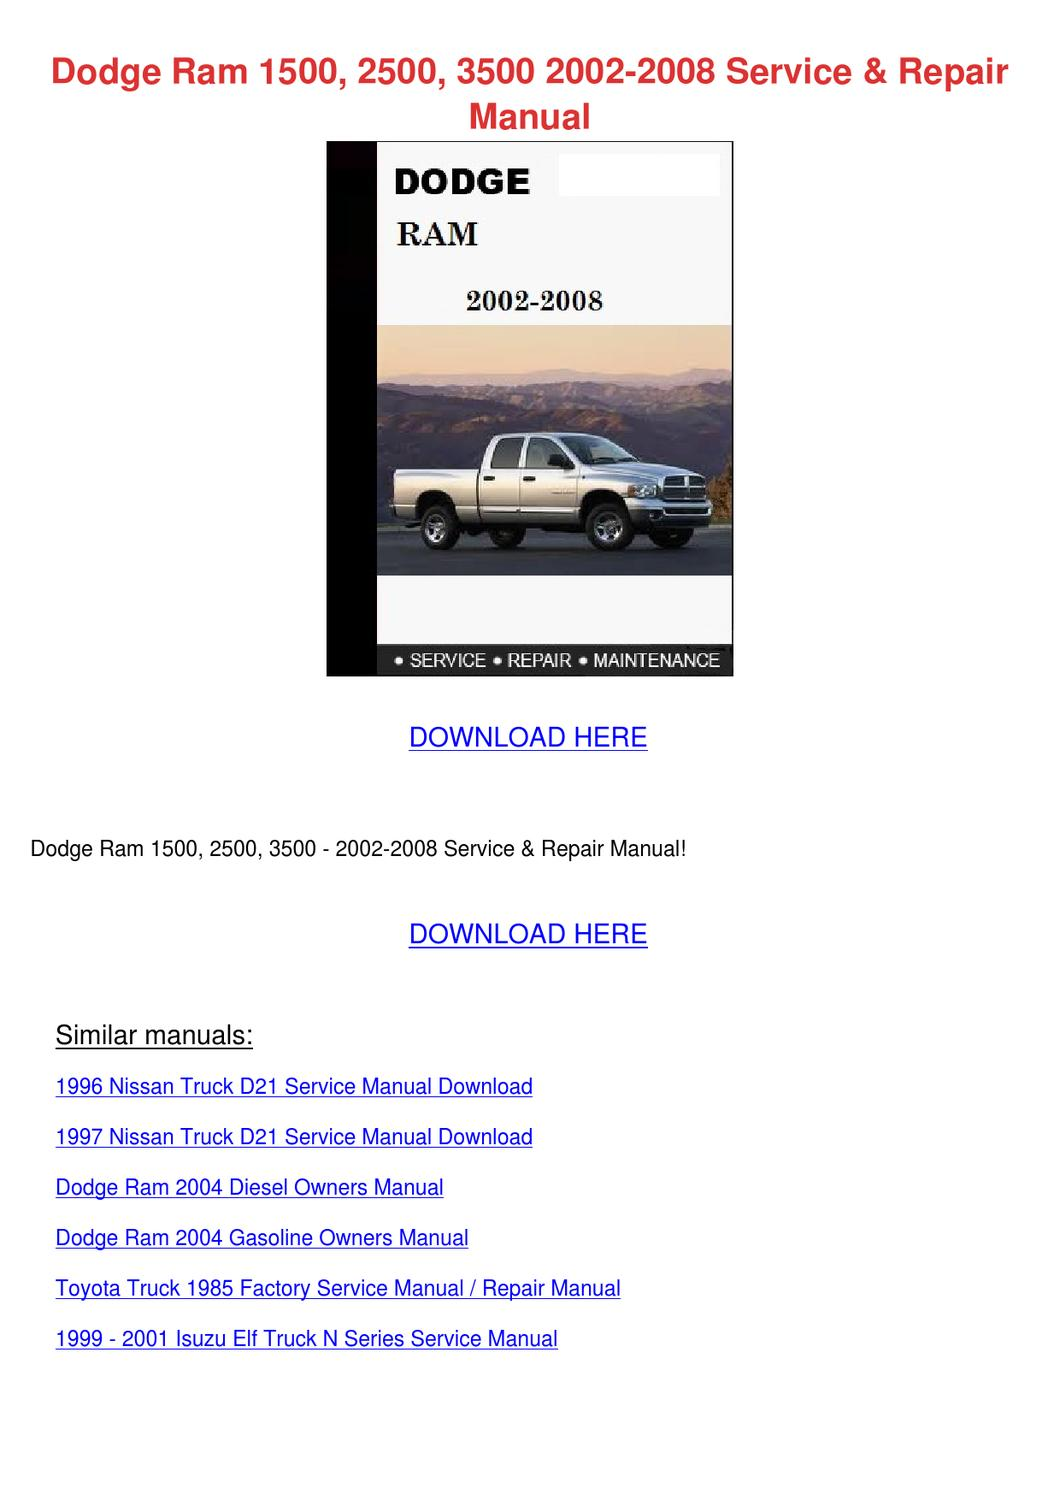 dodge ram 1500 2500 3500 2002 2008 service re by russell. Black Bedroom Furniture Sets. Home Design Ideas